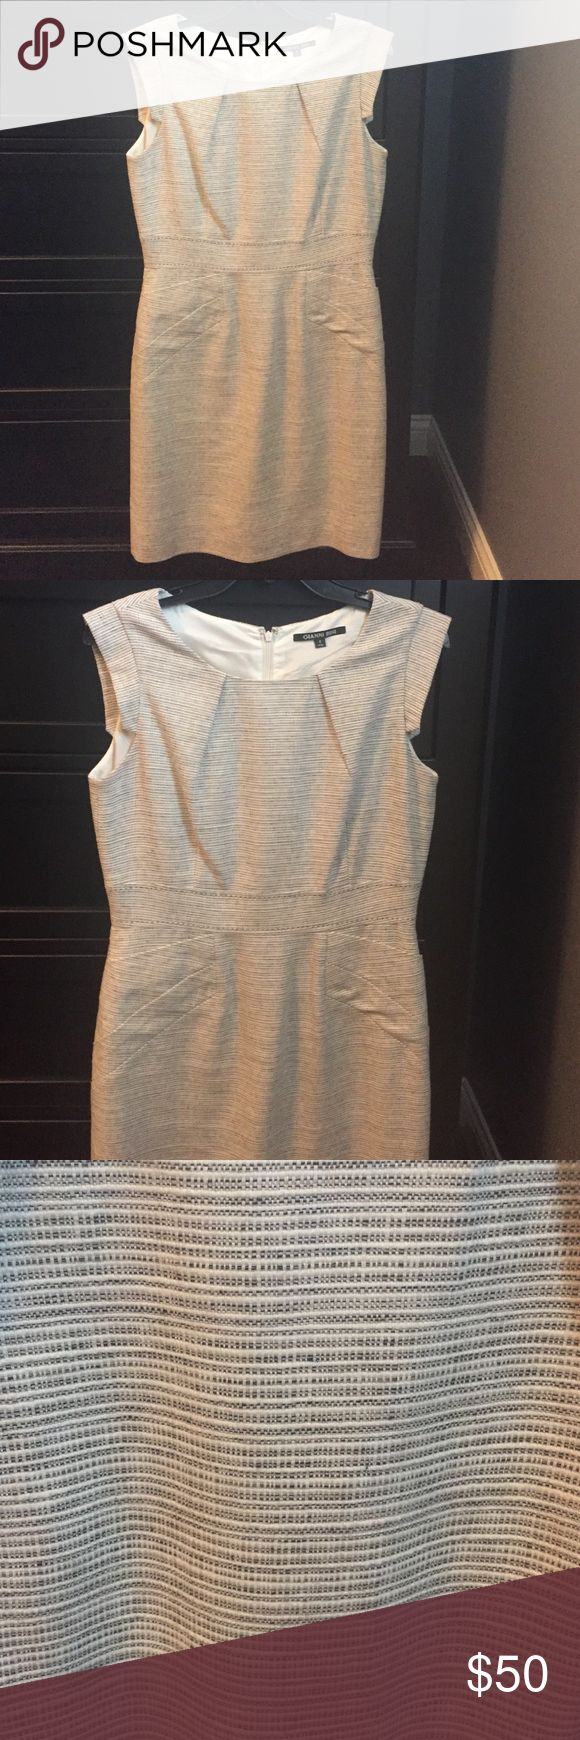 Beautiful Gianni Bini Structured Dress Cap Sleeved, Size 8 Dress with pockets Gianni Bini Dresses Midi